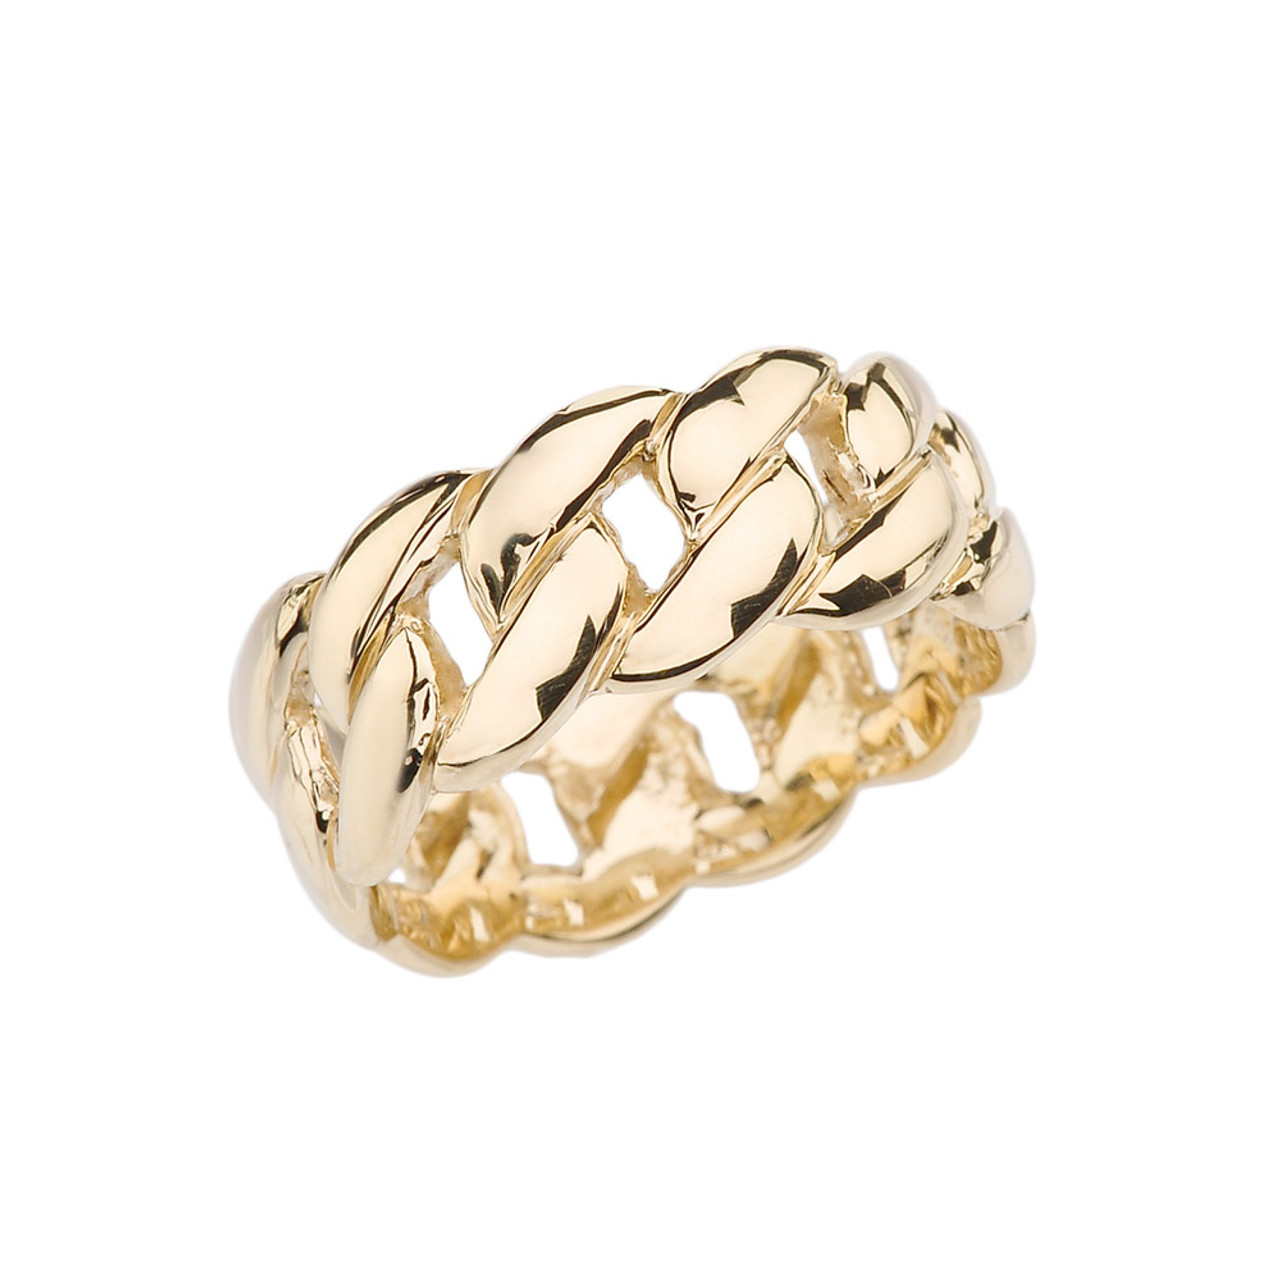 95736e2ca24fd Yellow Gold 8 mm Cuban Link Ring Band